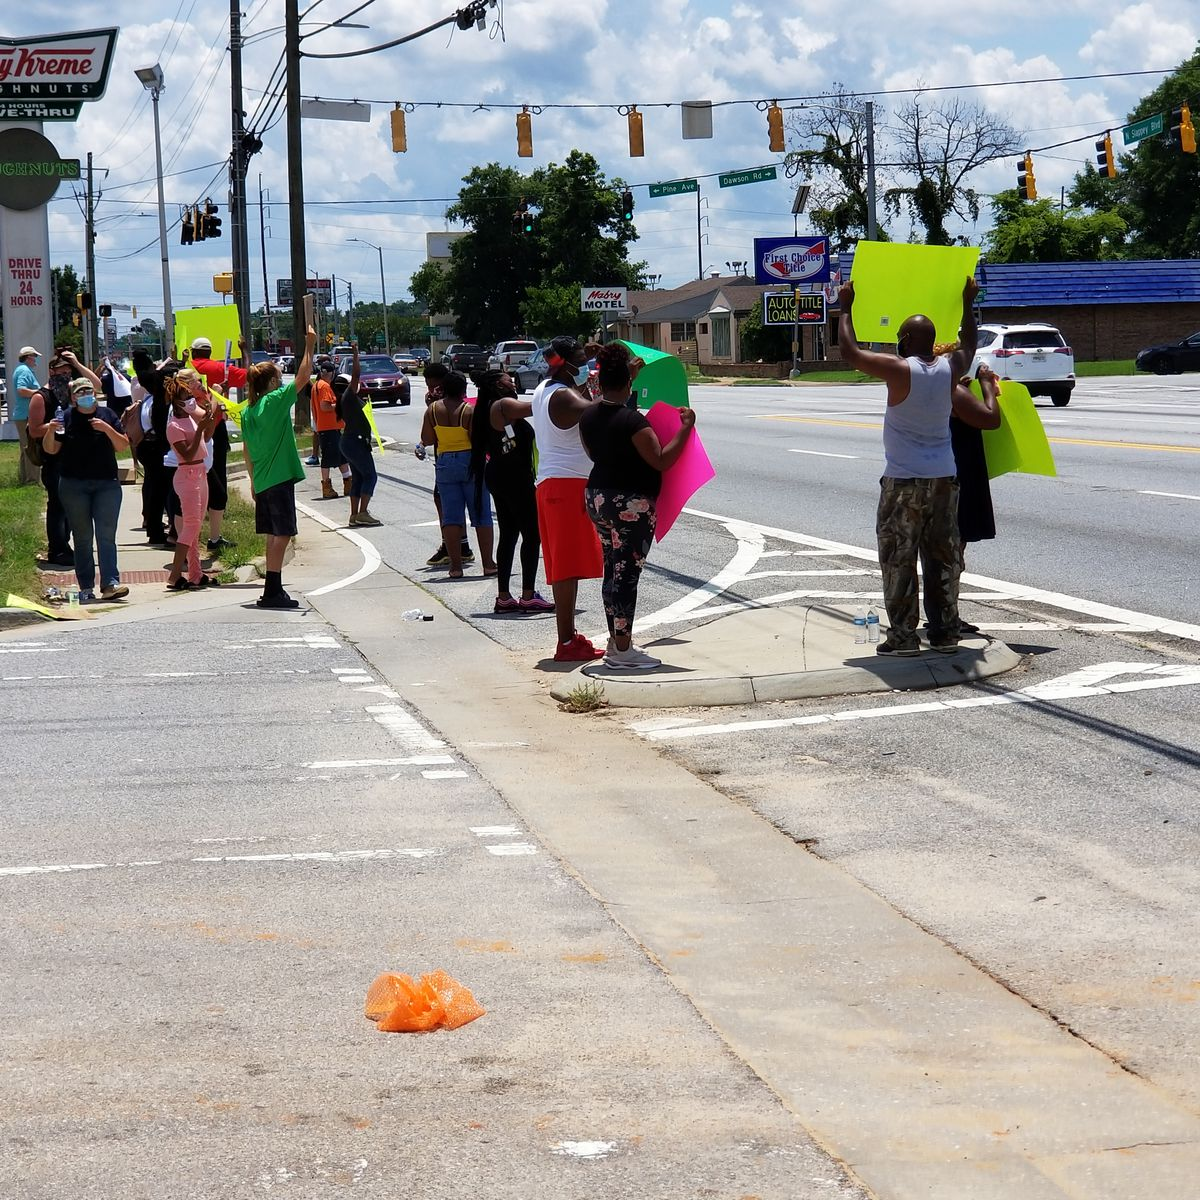 Peaceful protest against killing of George Floyd underway in Albany